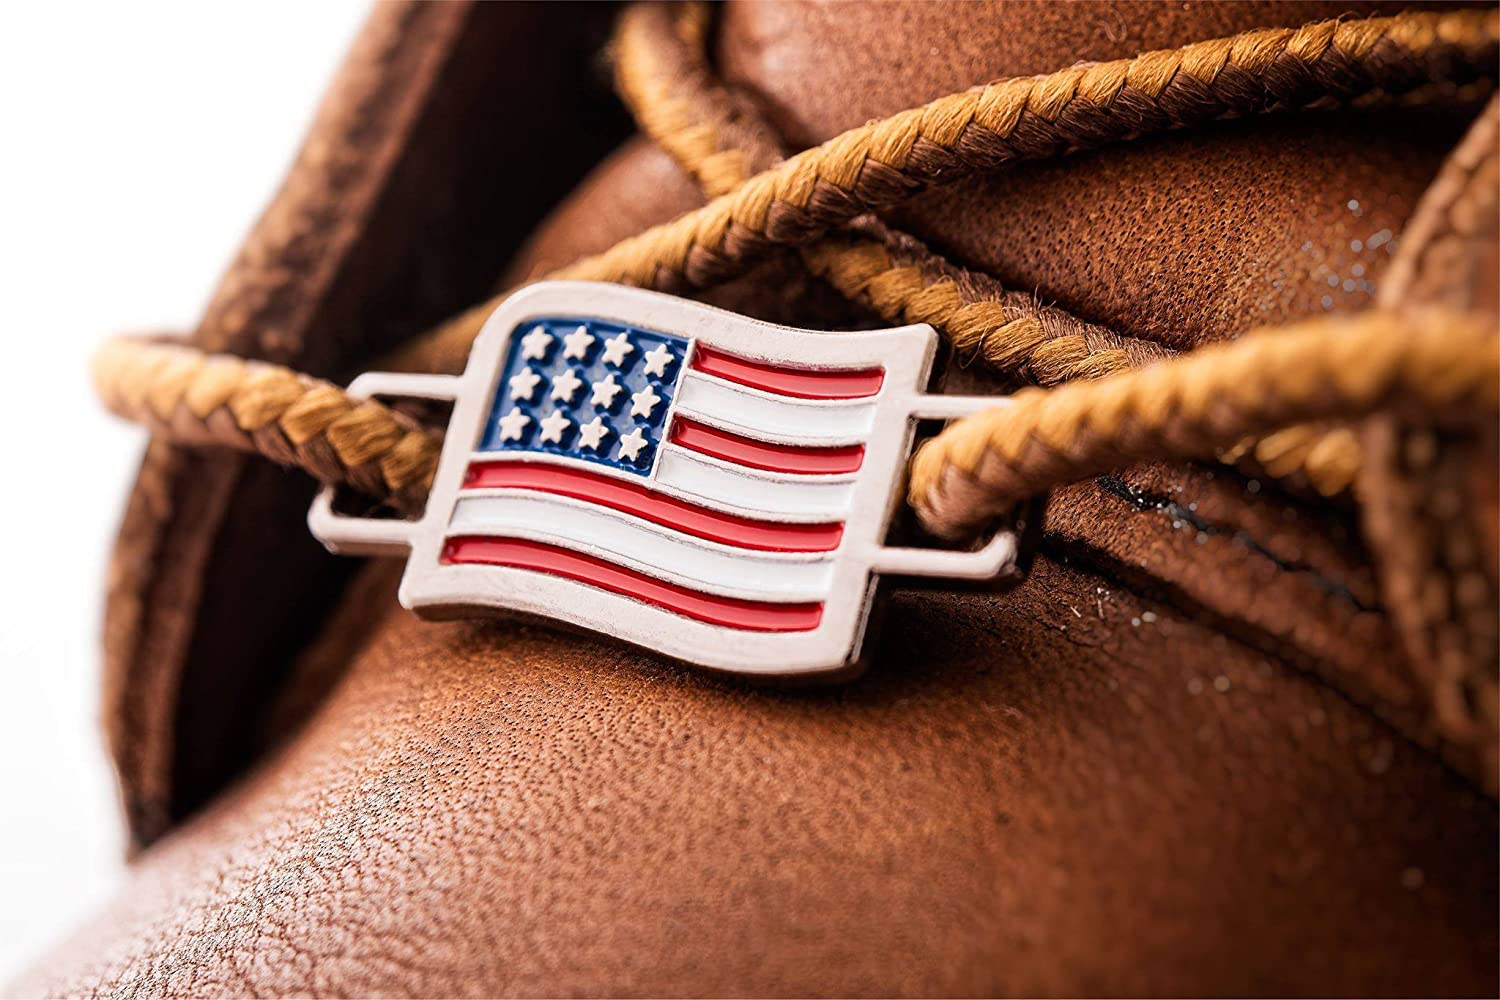 2 USA Flags Shoes Boot Lace Keeper Set US American Workers Shoelace Charms for Shoes Sneakers: Home & Kitchen